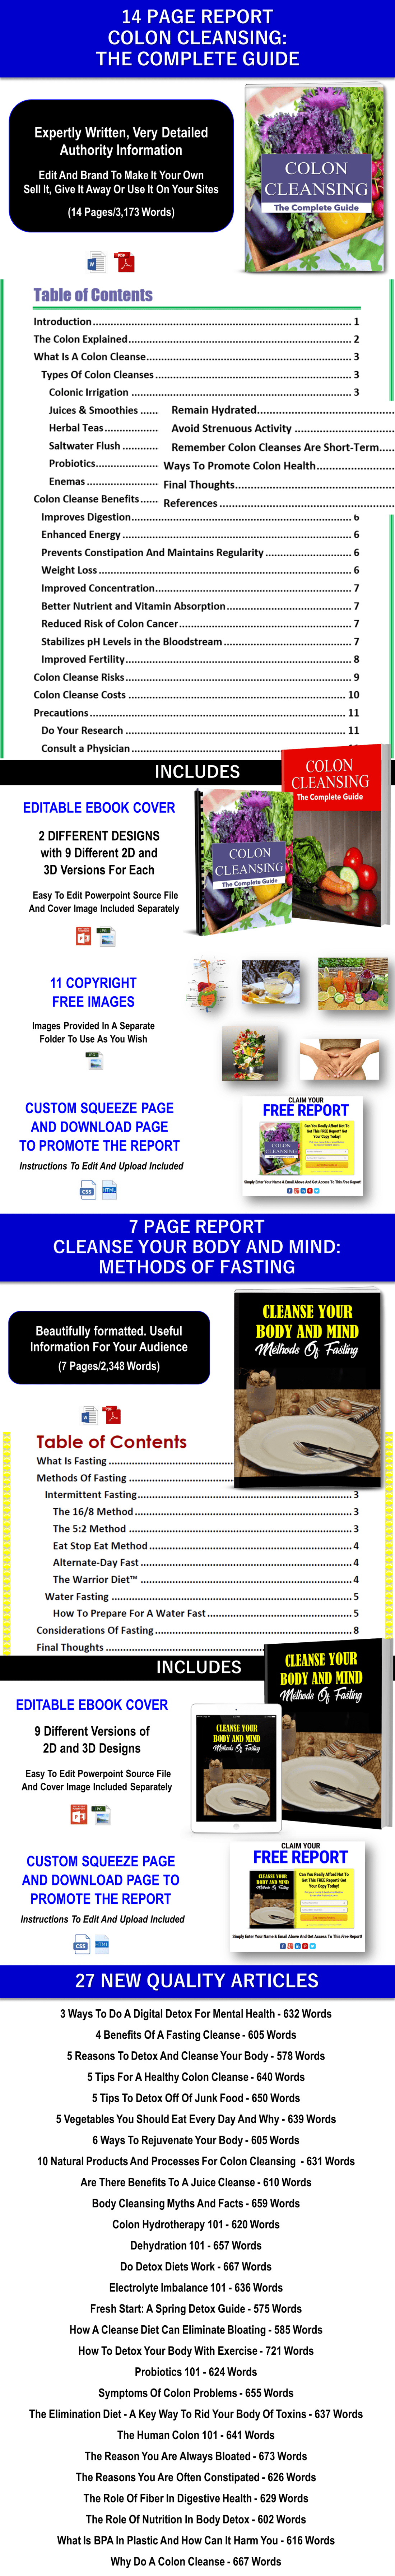 COLON CLEANSE, FASTING CLEANSE AND MORE DETOX CONTENT PLR Rights